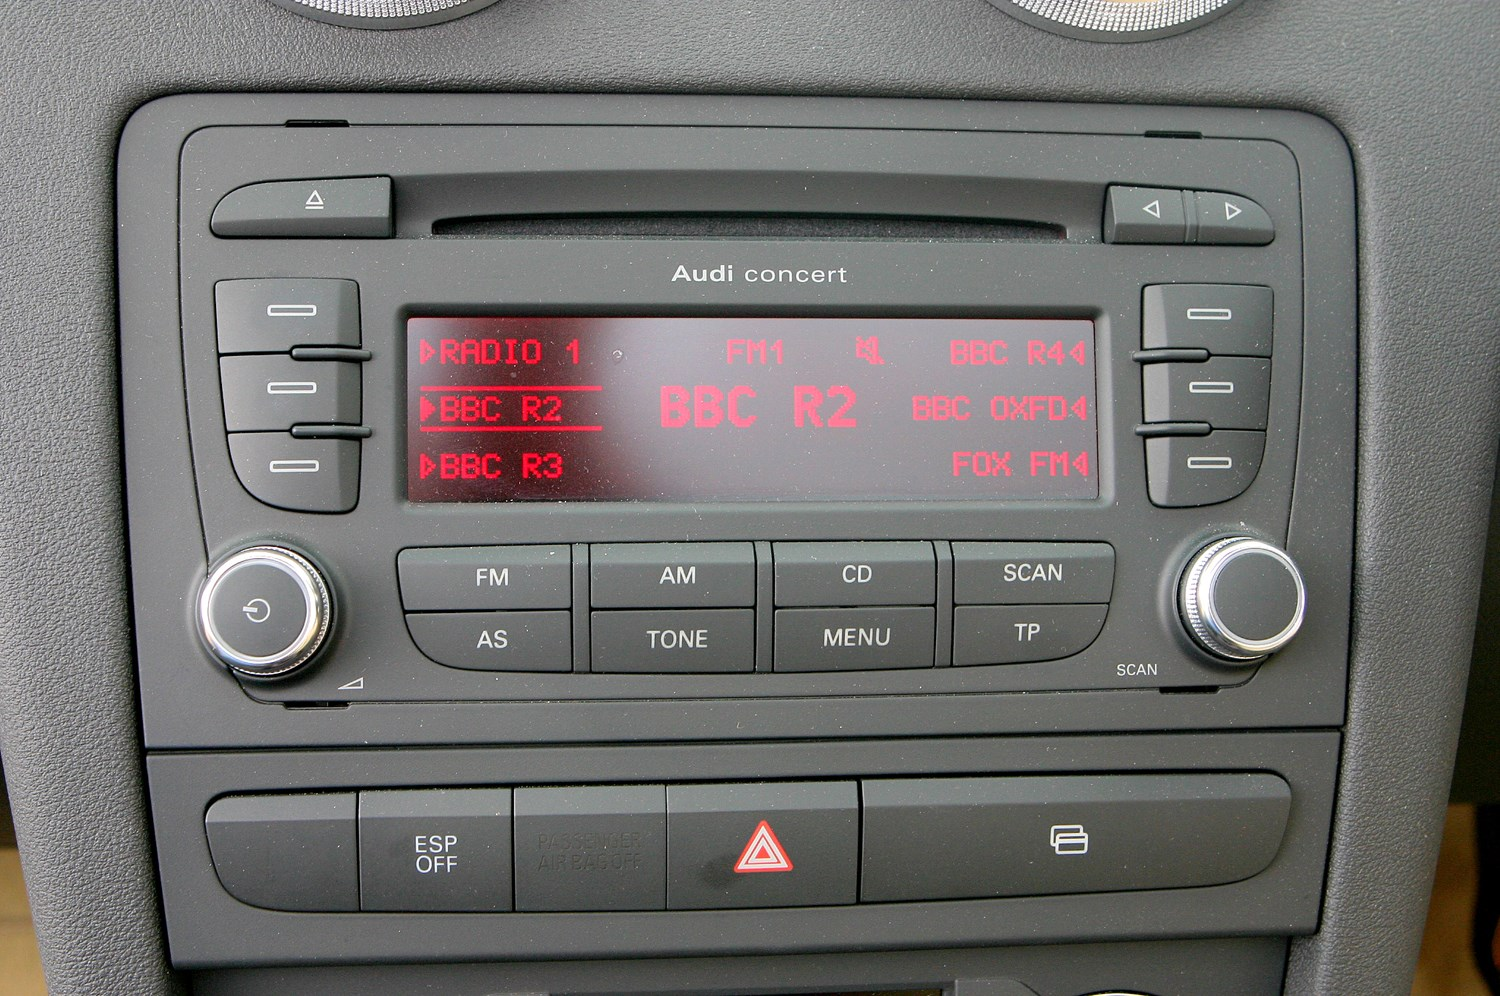 Audi Concert Stereo User Manual